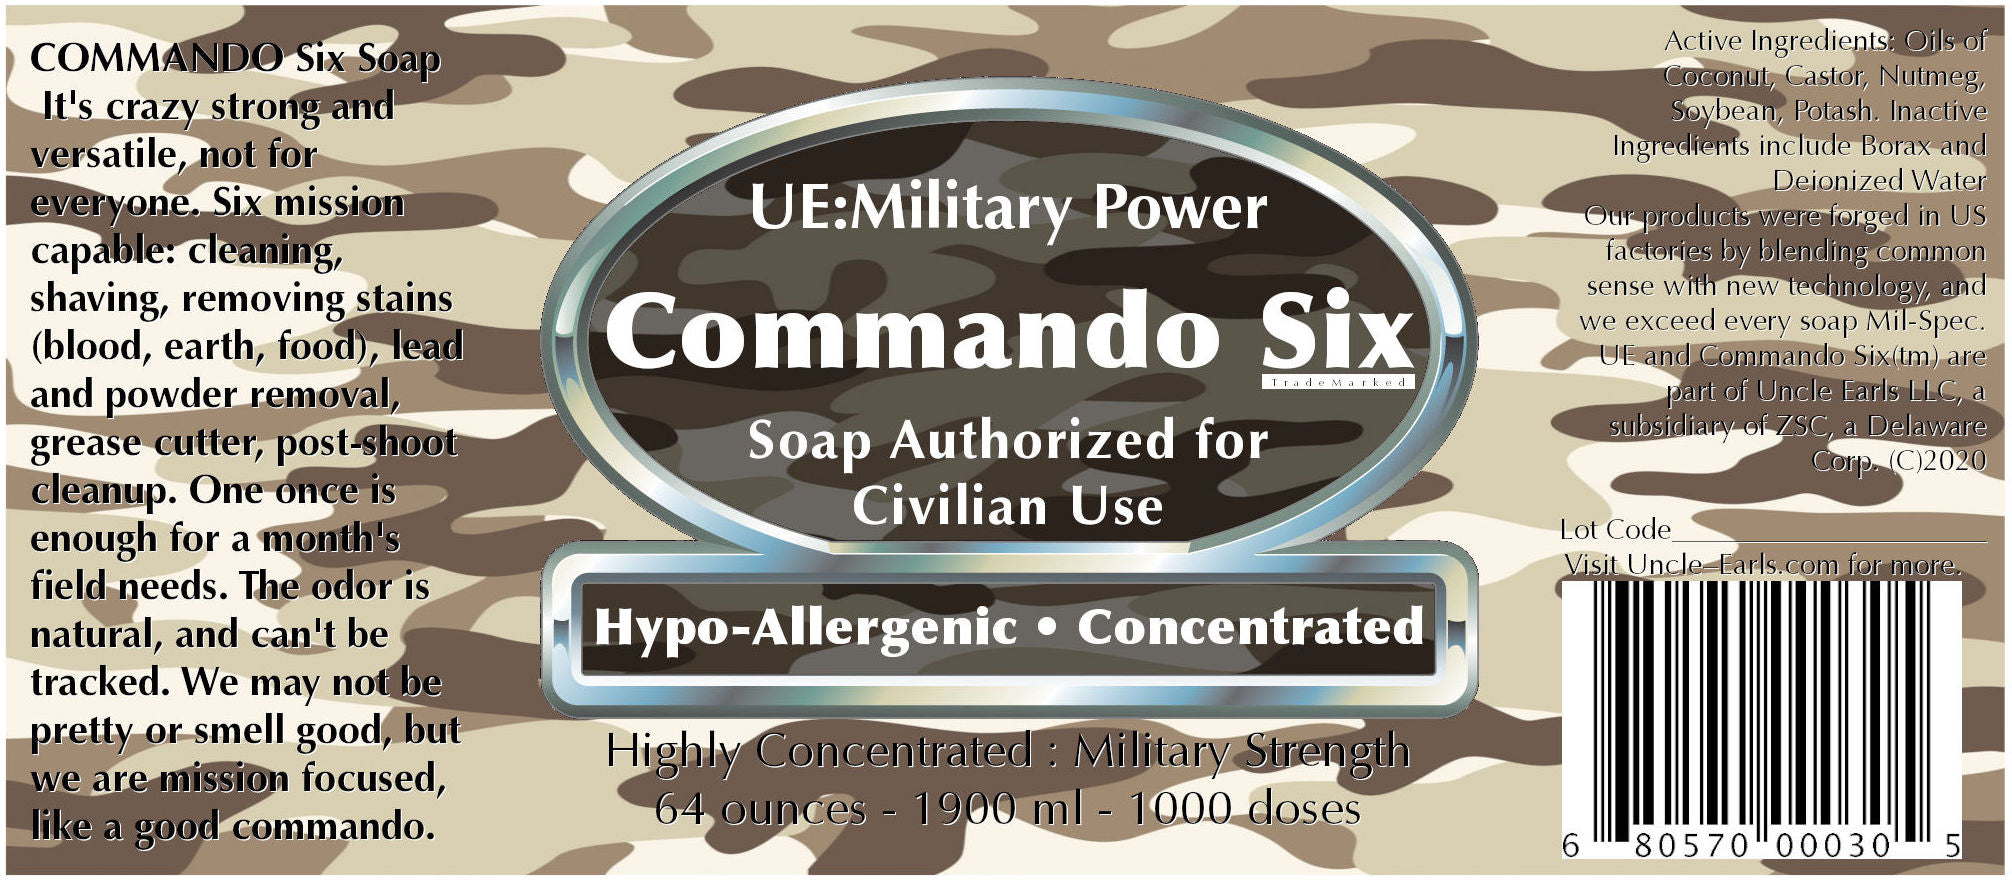 Commando Six Soap label